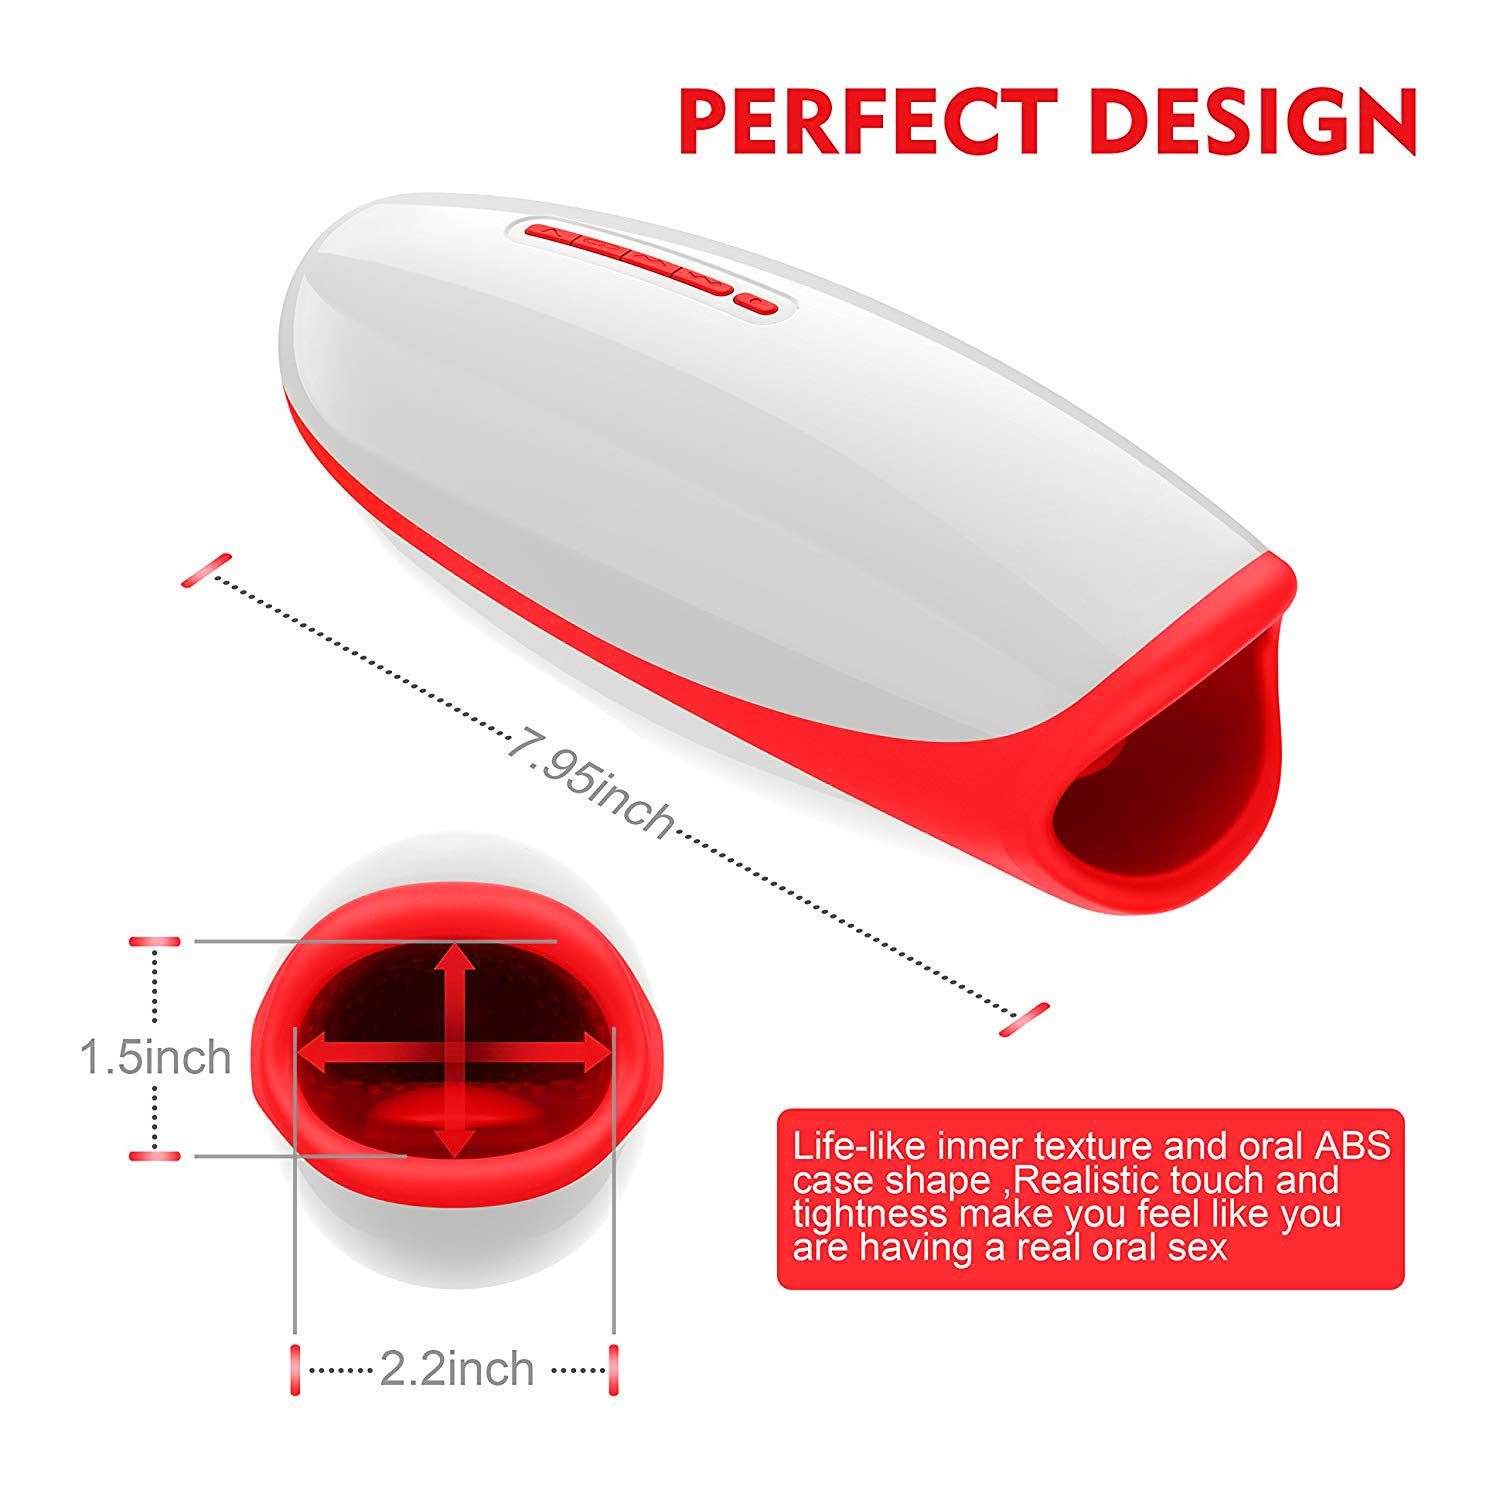 Yunzong Voice Interaction M āle āutómatic Piston Cup Sucking 400 Times/Min and Heating Electronic M āssage Cup M āle's Toy